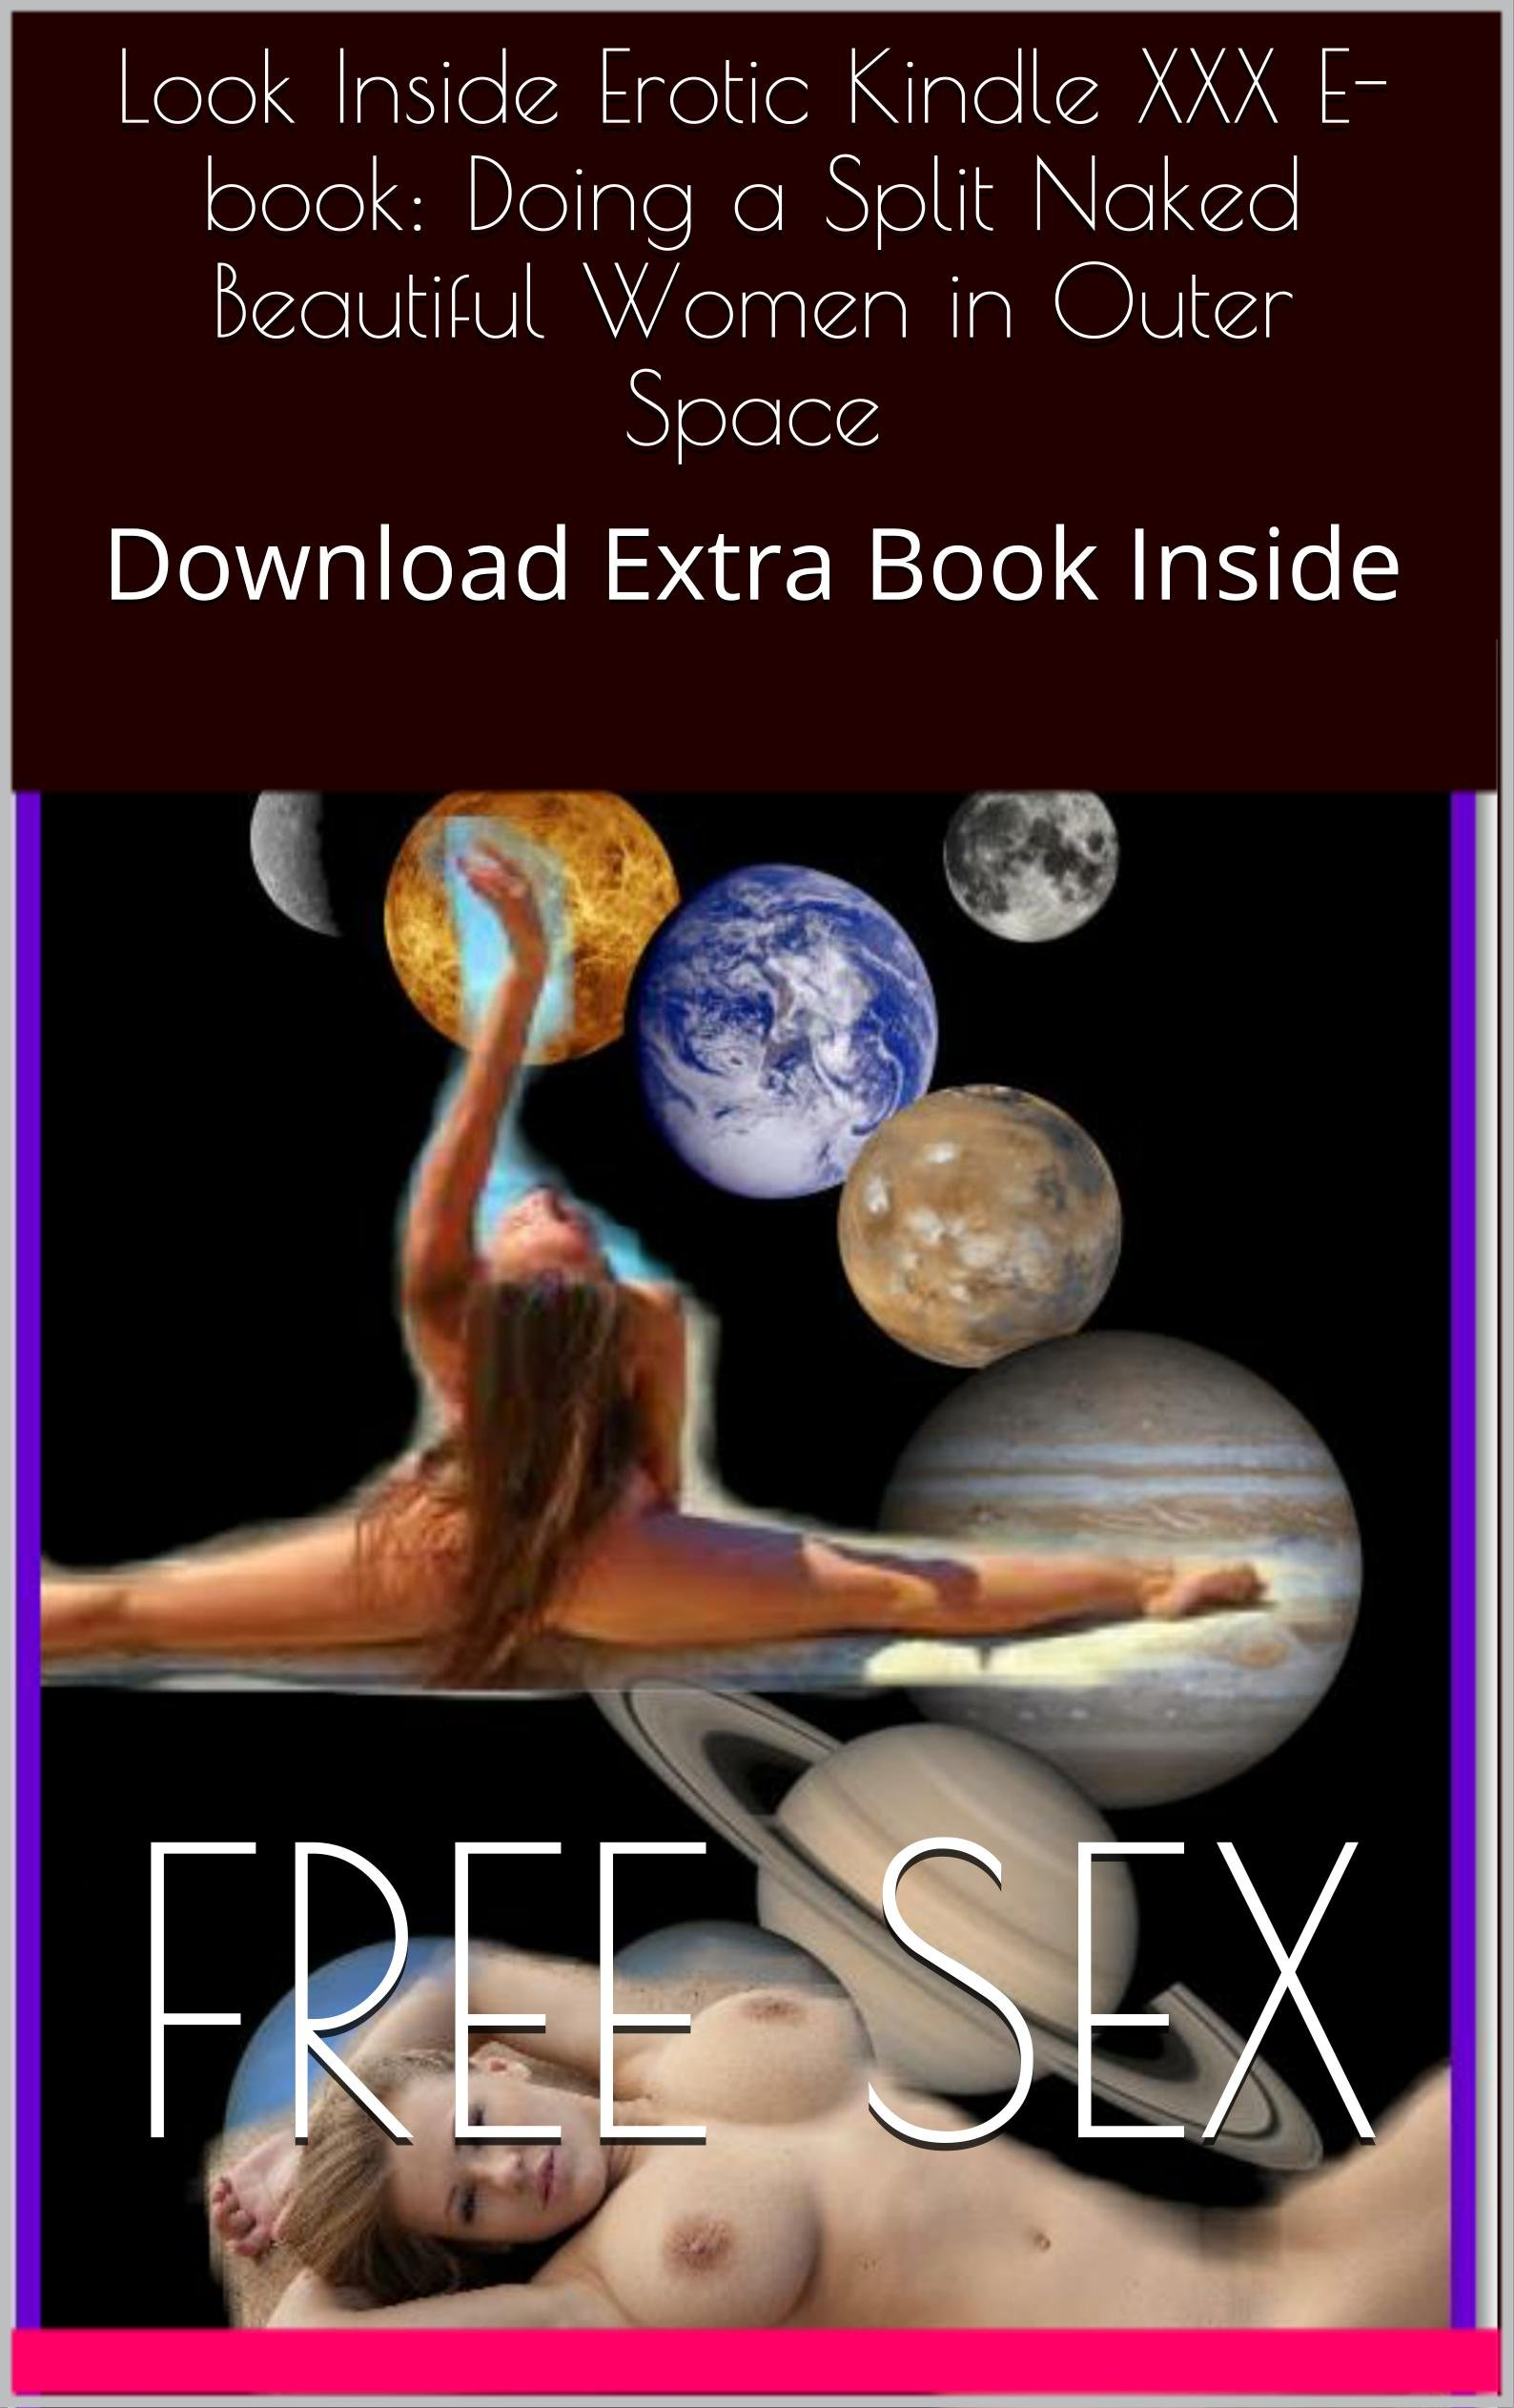 Look Inside Erotic Kindle XXX Star E-book: Doing a Split Naked Beautiful Women in Outer Space Wars: Download Extra Book Inside Shaved Pussy Clit Vagina Boobs Butts Anus